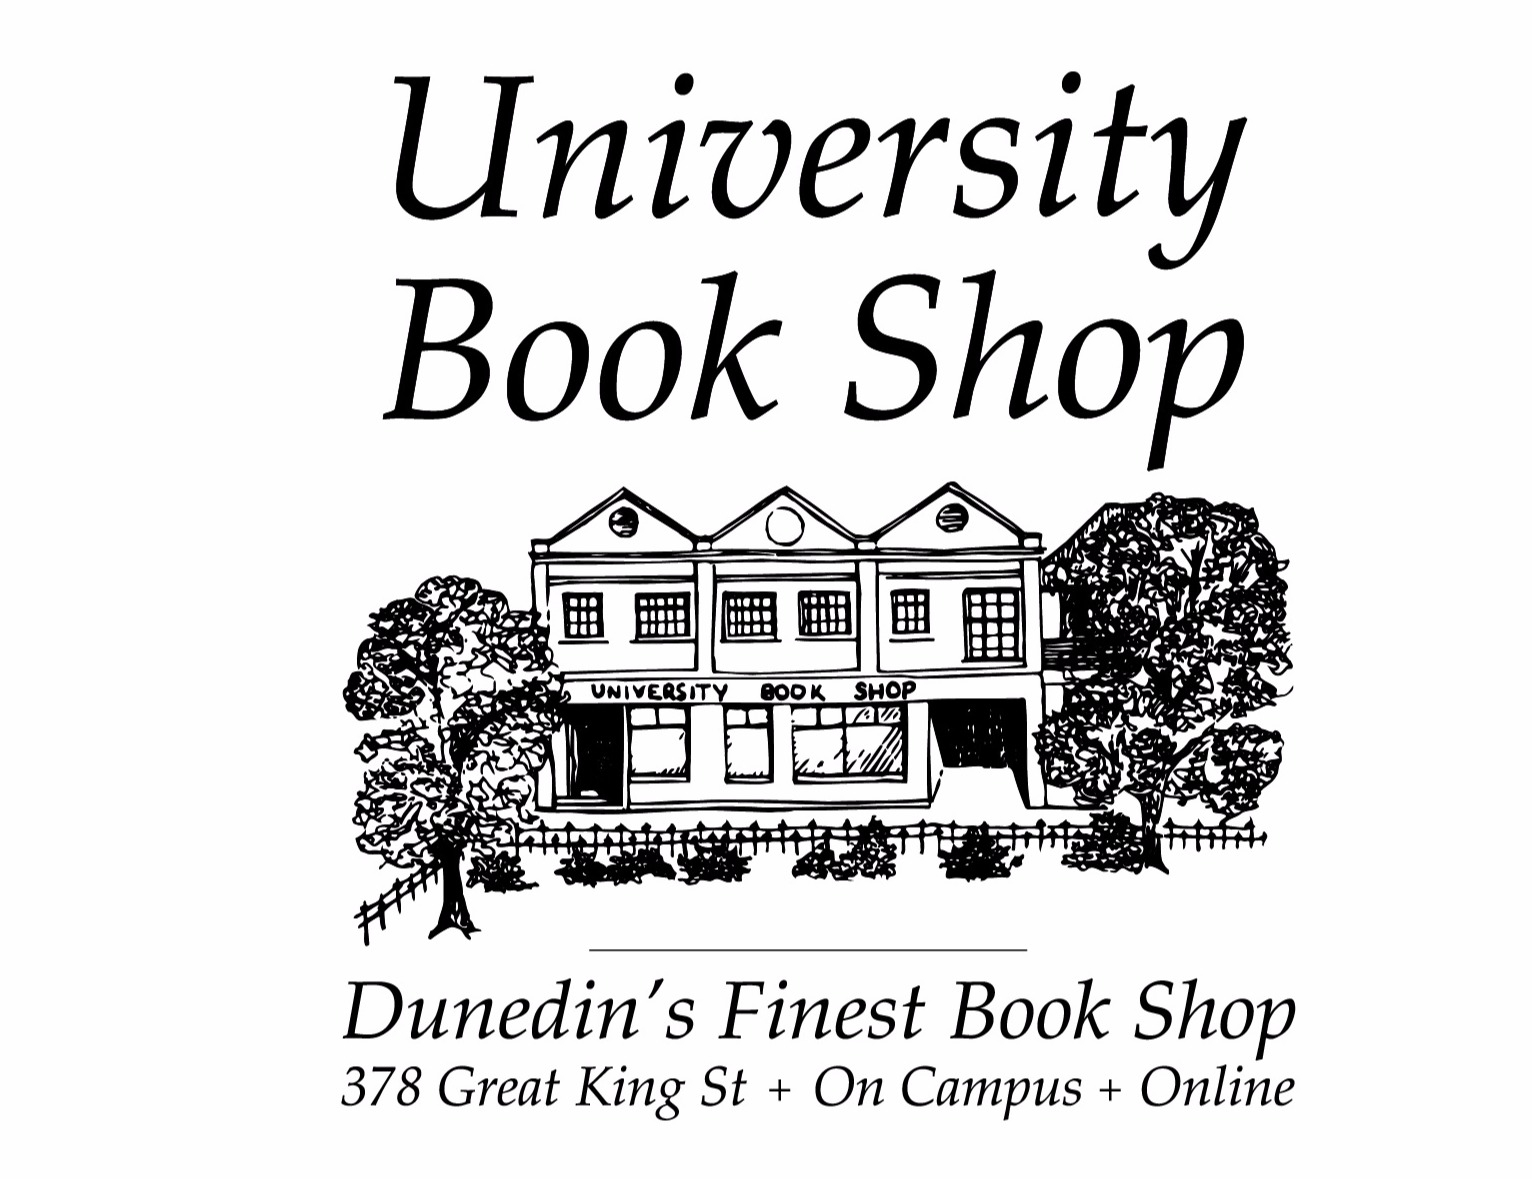 University Book Shop Otago Ltd